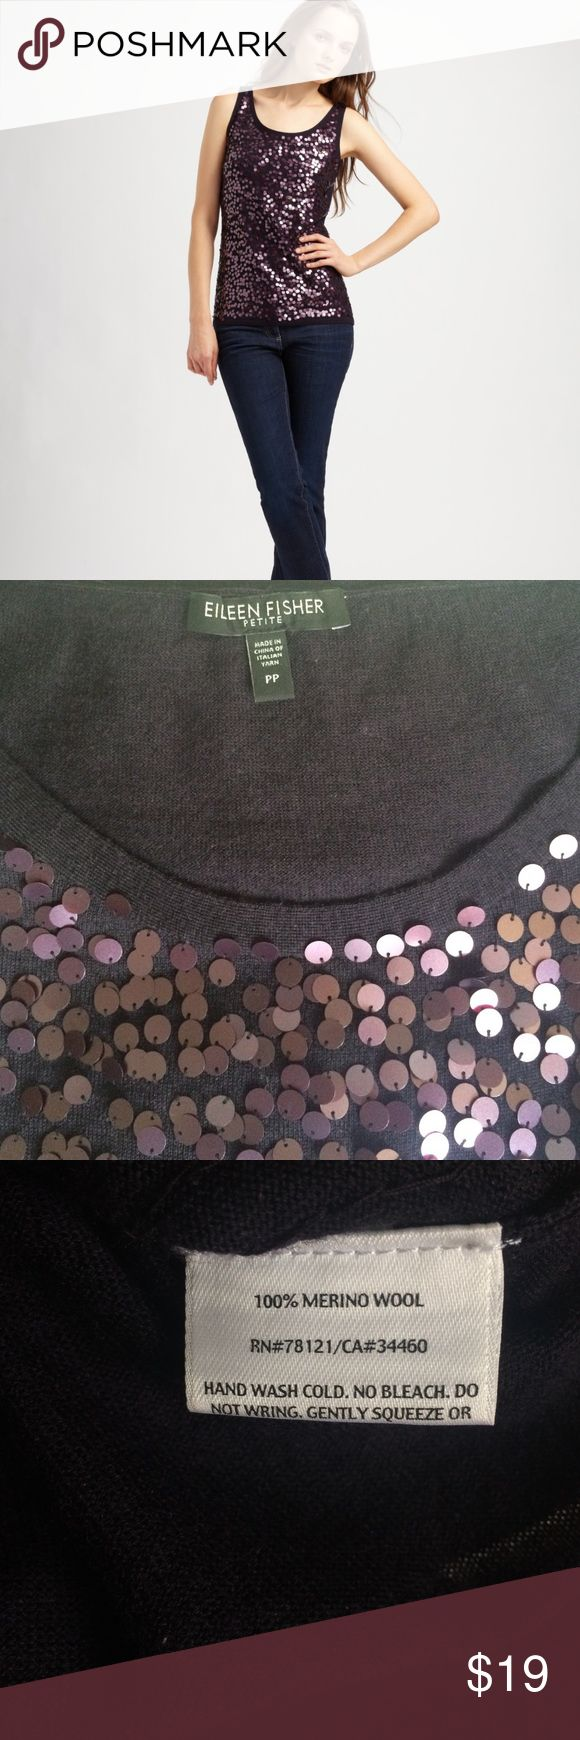 Eileen Fisher sequin tank top Beautiful sequin tank top by Eileen Fisher in merino wool. Flattering eggplant purple that looks great with almost any color pants or skirt. Excellent condition. Eileen Fisher Tops Tank Tops